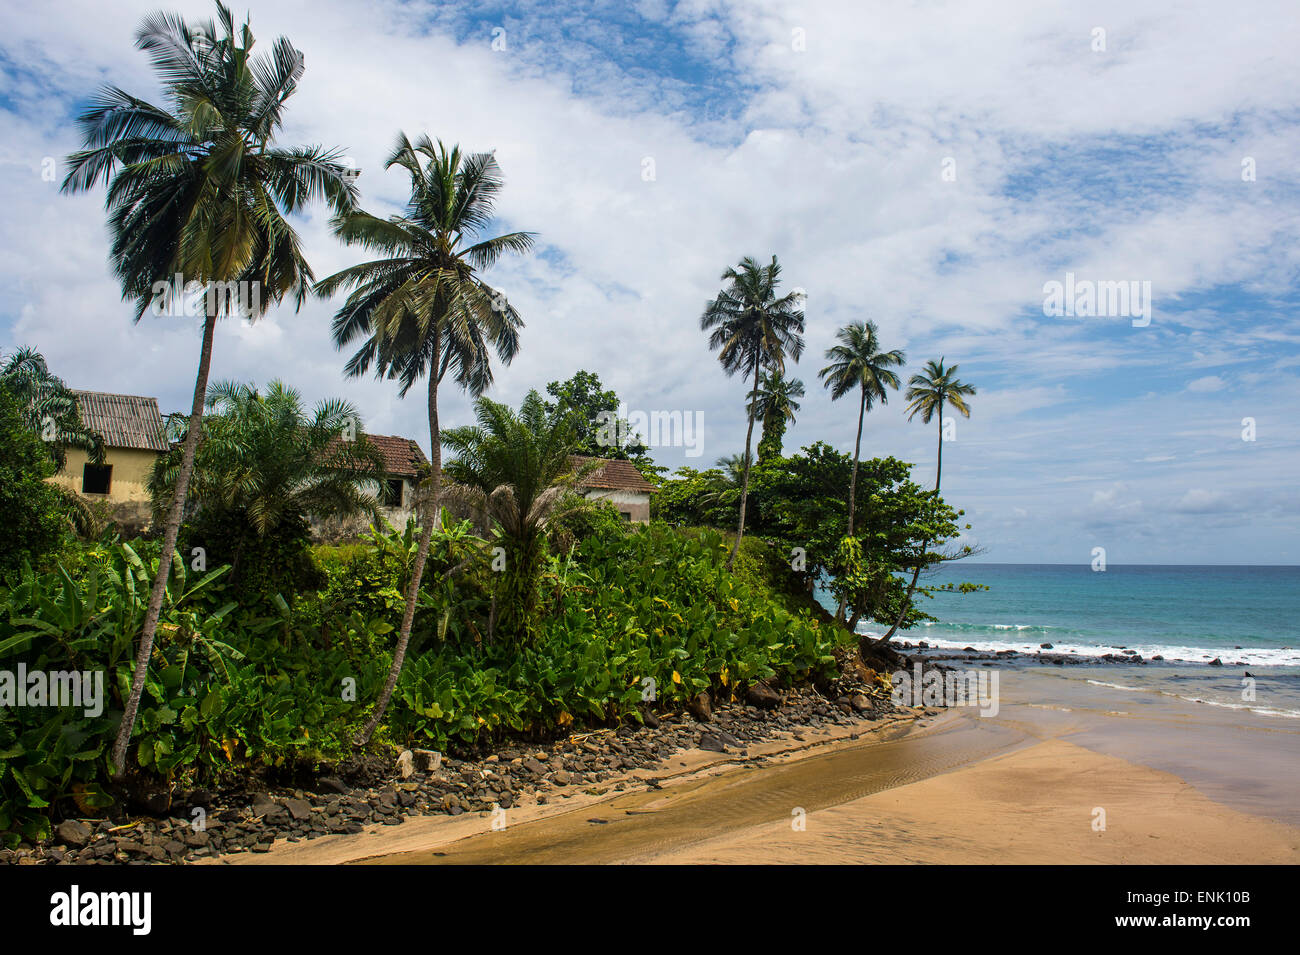 Colonial buildings in Caue, east coast of Sao Tome, Sao Tome and Principe, Atlantic Ocean, Africa - Stock Image